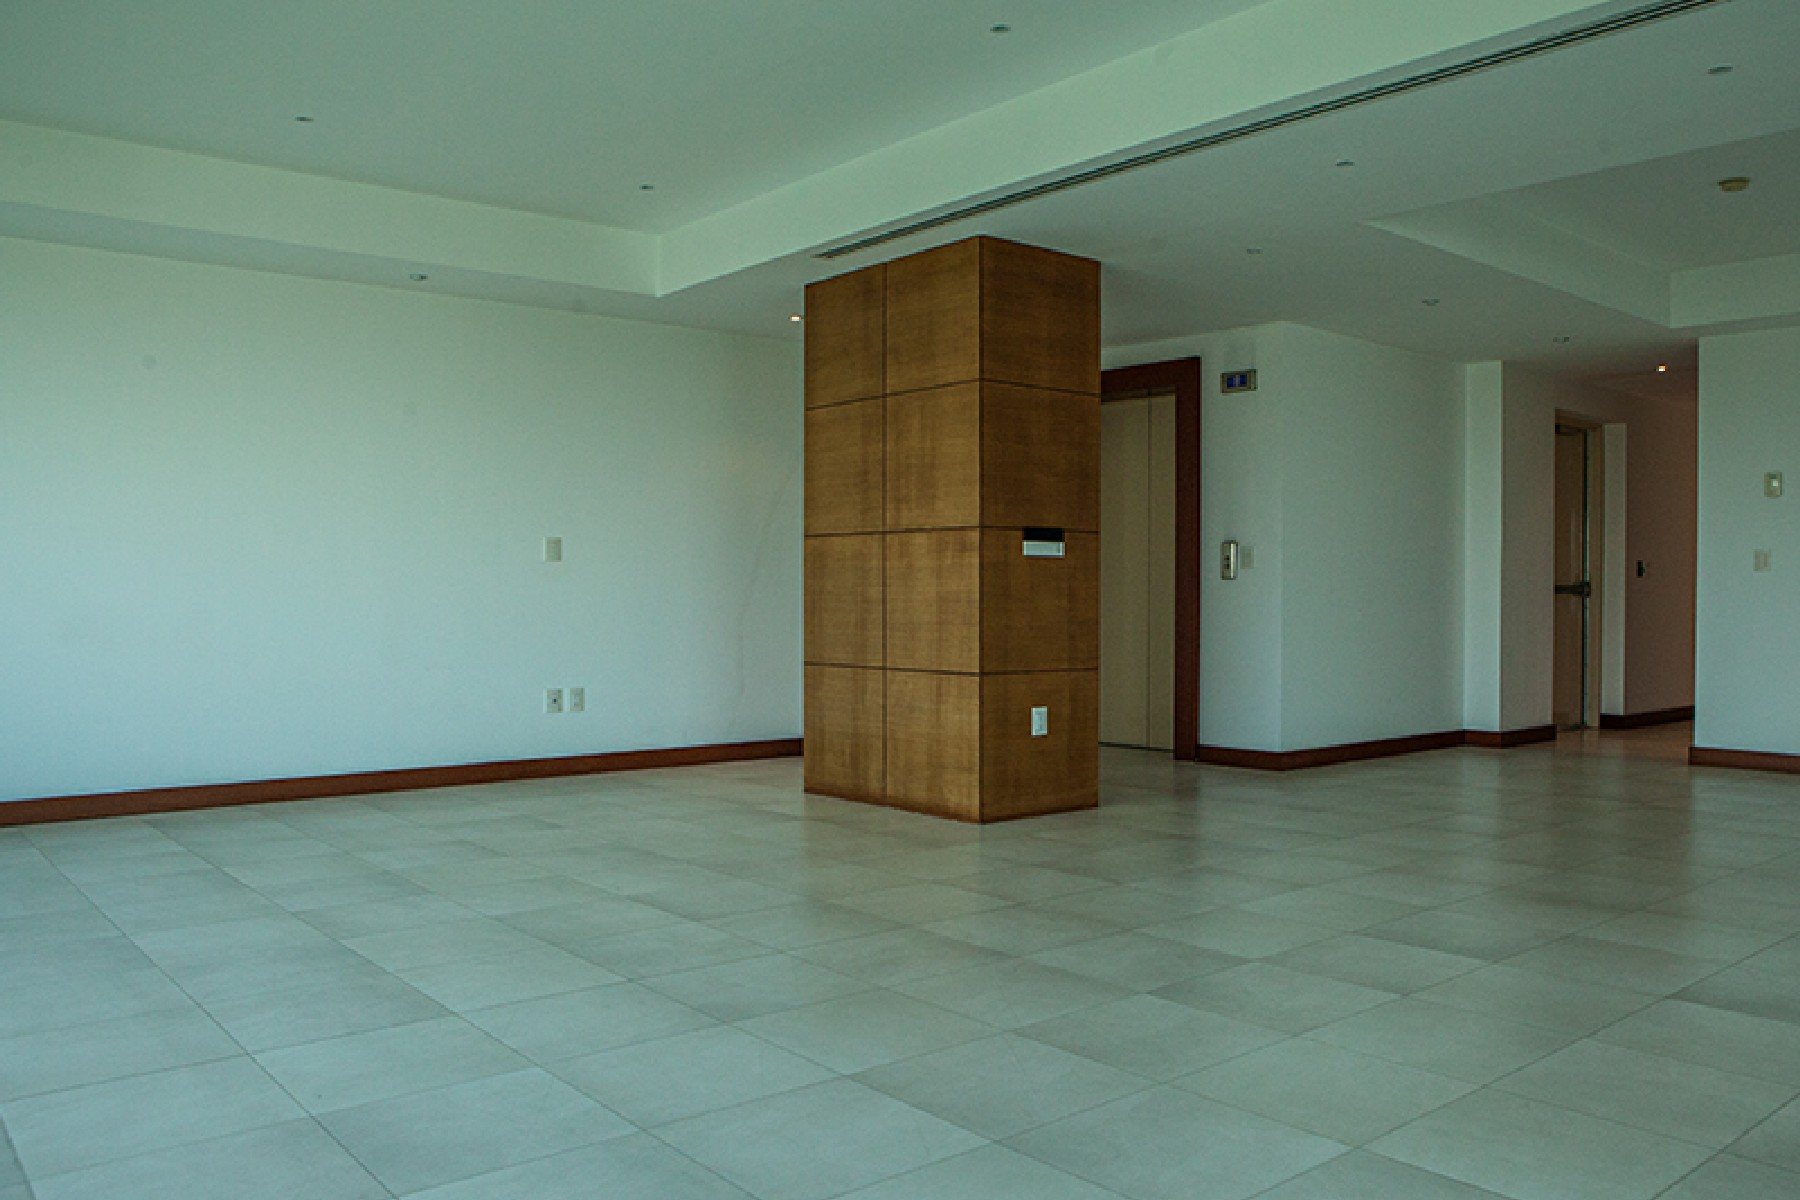 Additional photo for property listing at Torre Myth 1 - 07, Guadalajara Country Club Mar Tirreno 2136  1-07 Guadalajara, Jalisco 44610 Mexico